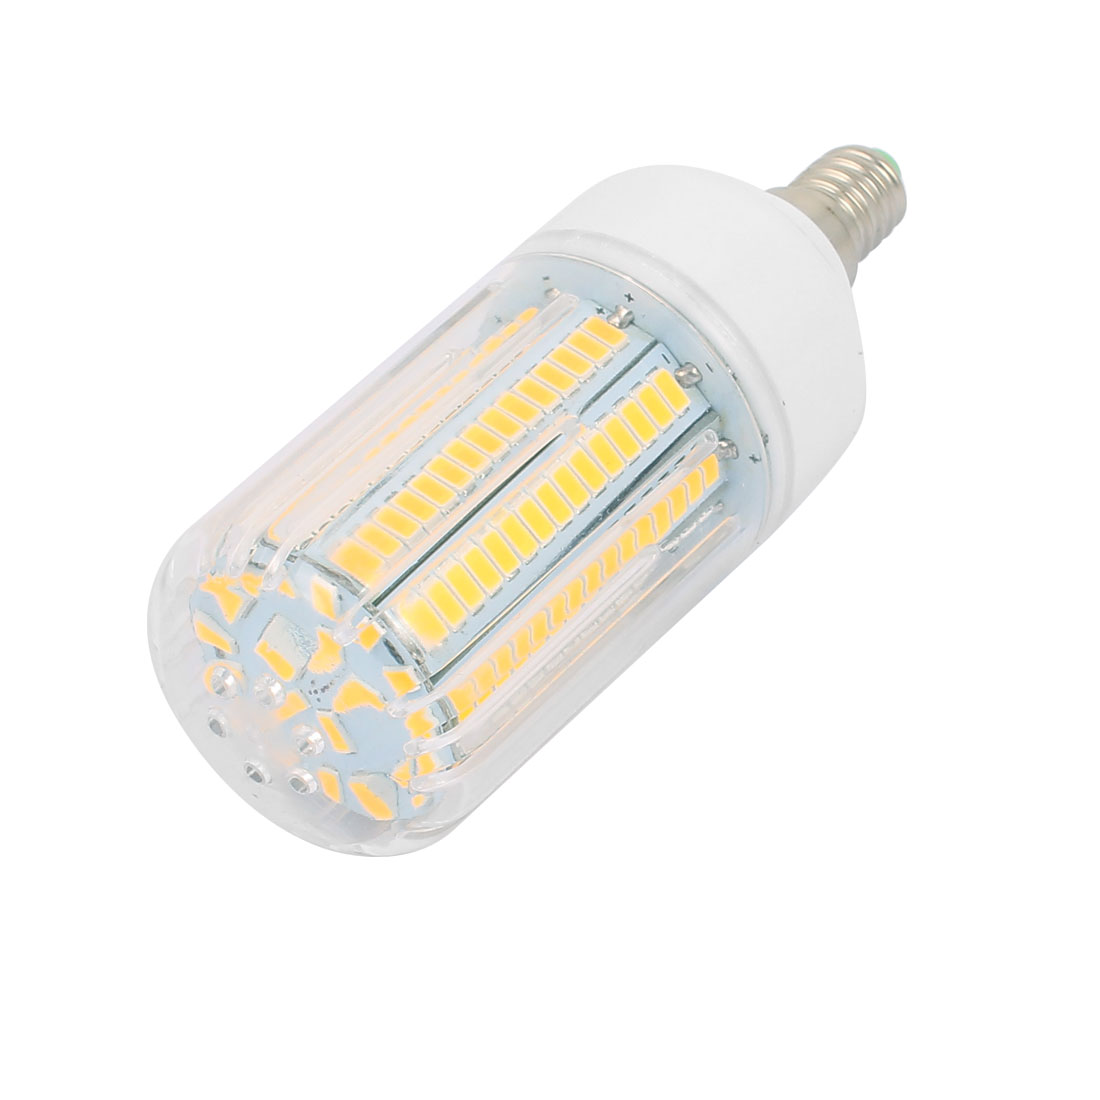 AC110V 15W 165 x 5736SMD E14 LED Corn Bulb Light Lamp Energy Saving Warm White